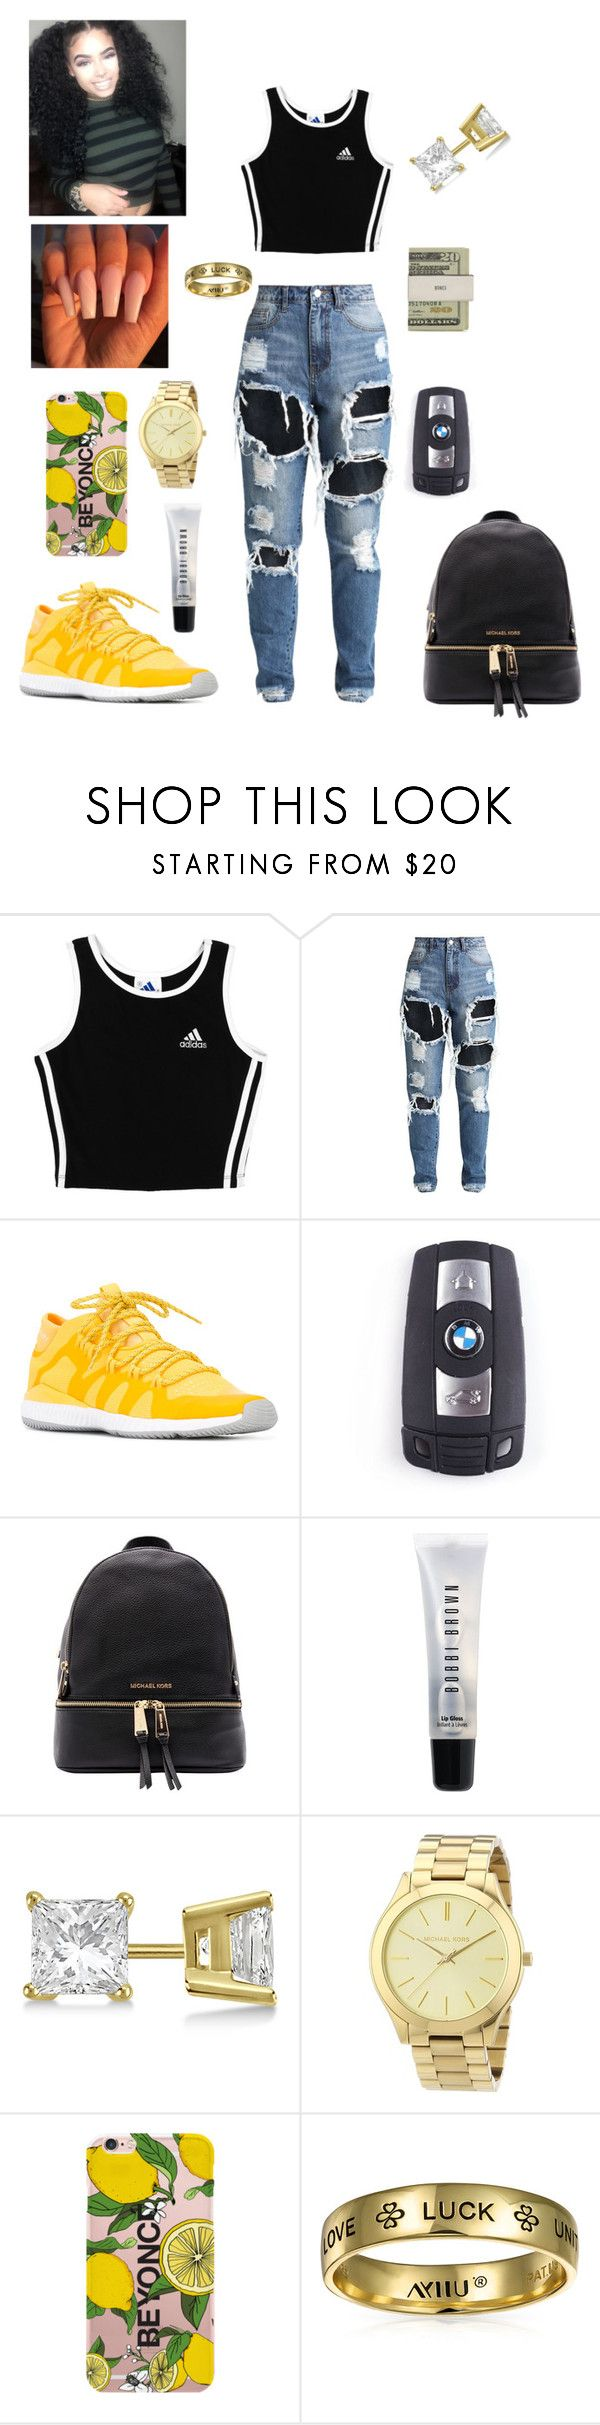 """""""#BAE❤️"""" by prxncessm ❤ liked on Polyvore featuring adidas, BMW, Michael Kors, Bobbi Brown Cosmetics, Jack Spade, Allurez and Bling Jewelry"""